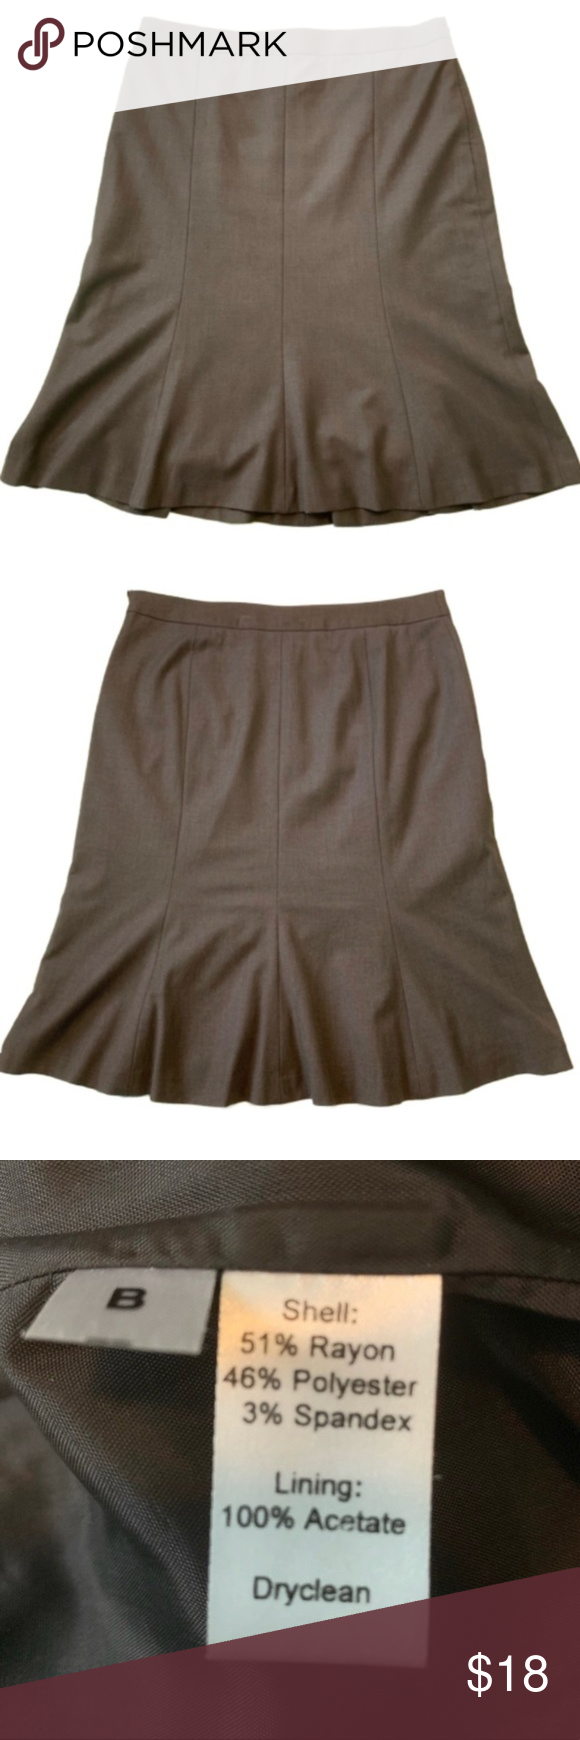 Ann Taylor LOFT Brown Trumpet Skirt Size 4T (Tall) Gently Used Side Zipper Lined LOFT Skirts #loftclothes